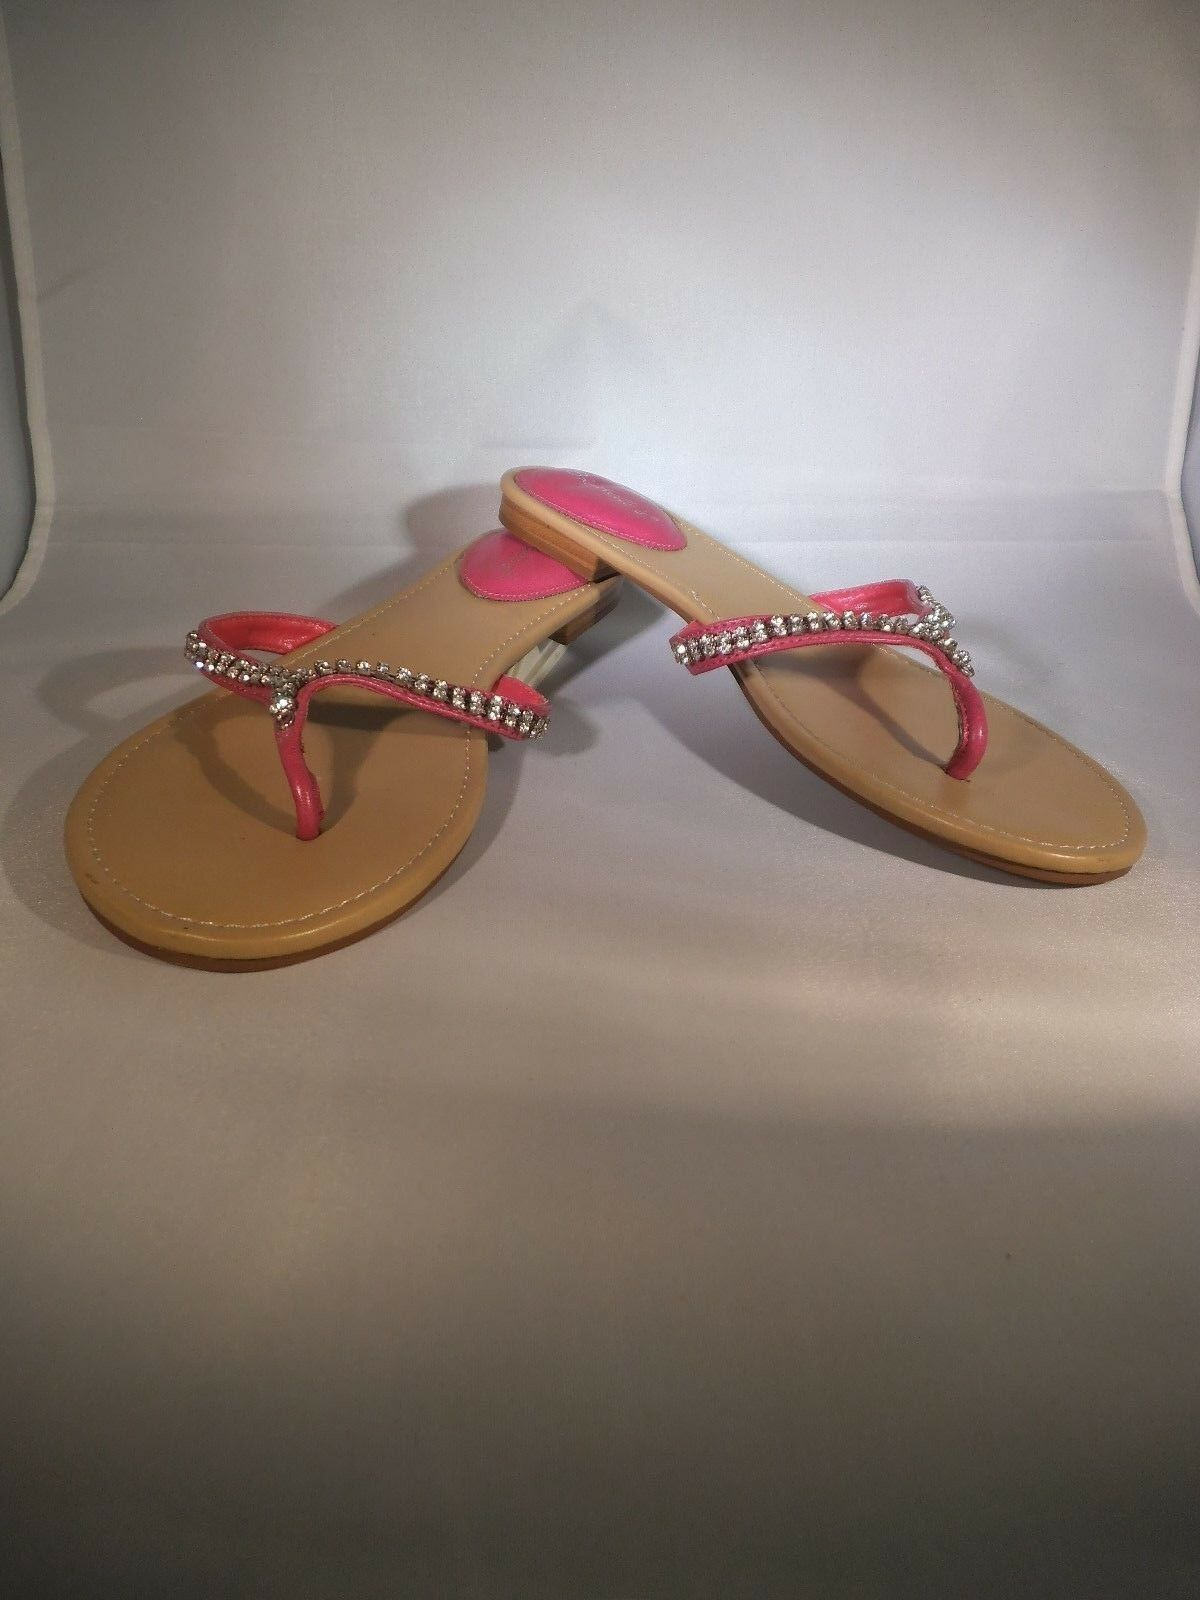 NEW LADIES BRECKELLE'S SIZE PINK 9 SANDALS FLIP FLOPS PINK SIZE RHINESTONES CRYSTALS BLING 6a4285